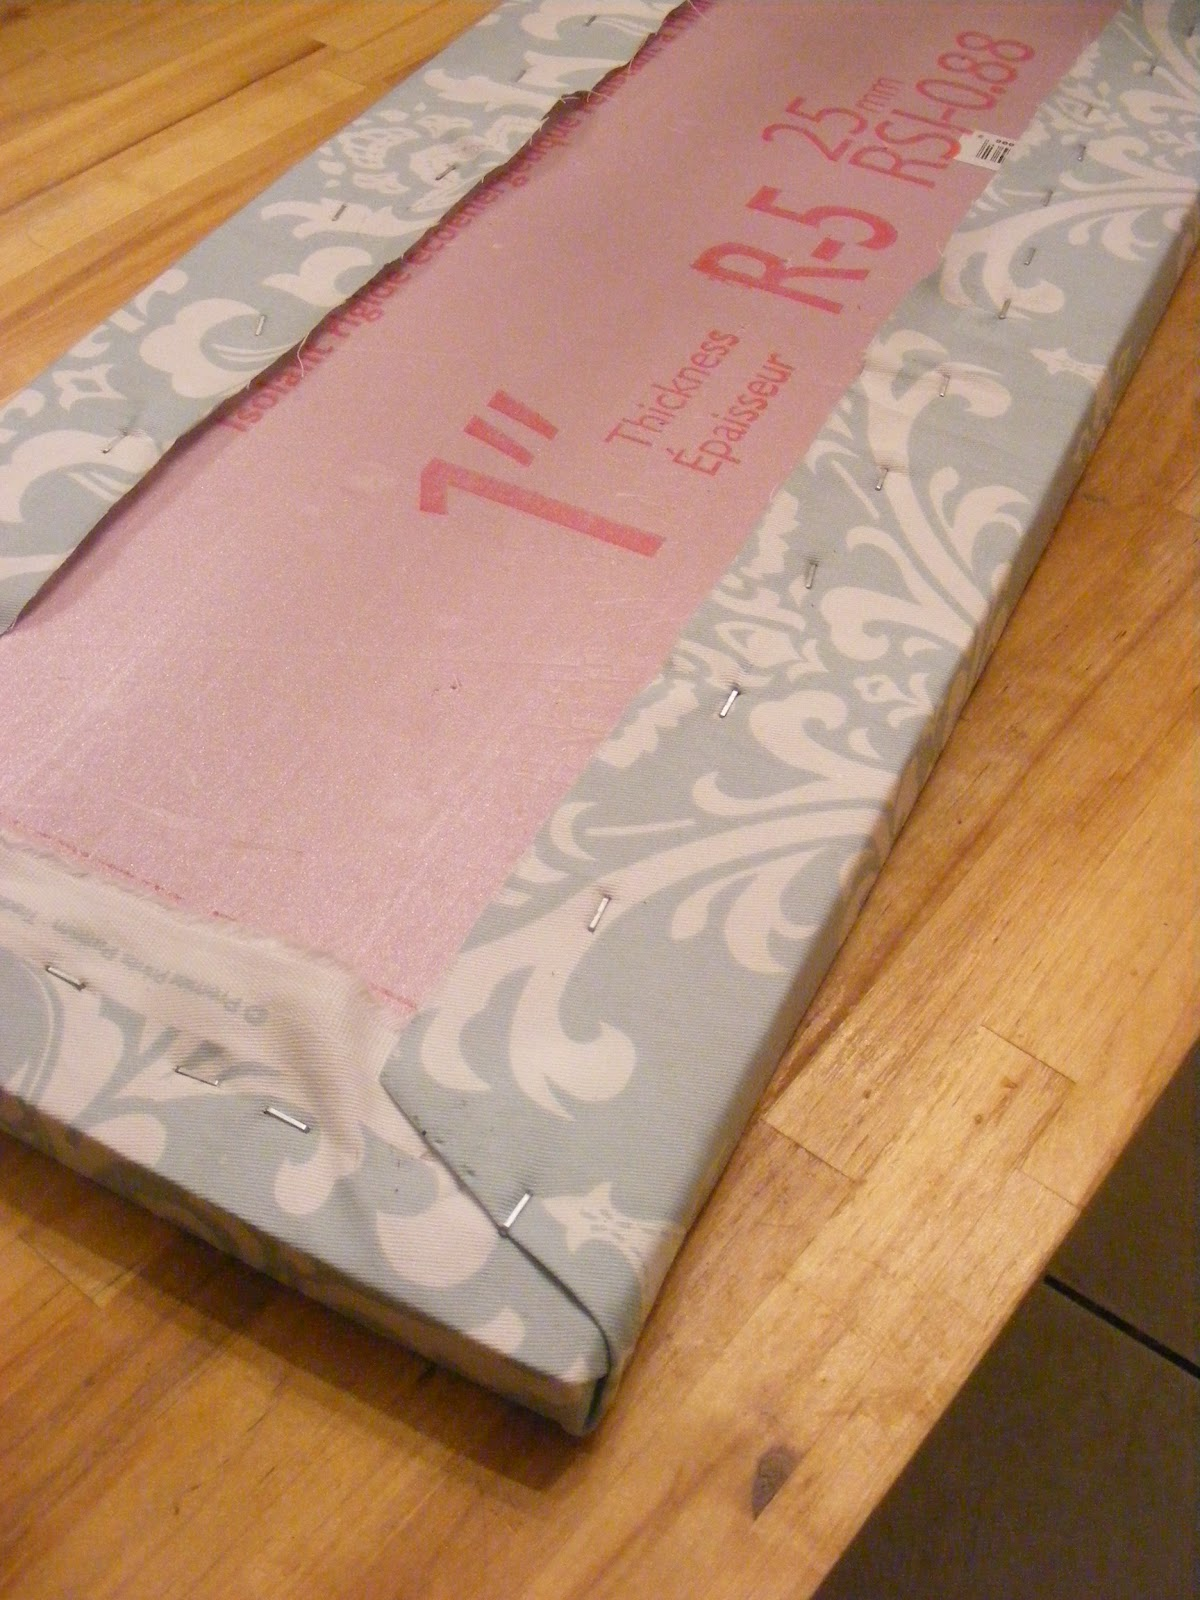 The complete guide to imperfect homemaking simple thrifty diy art march 30 2012 amipublicfo Images